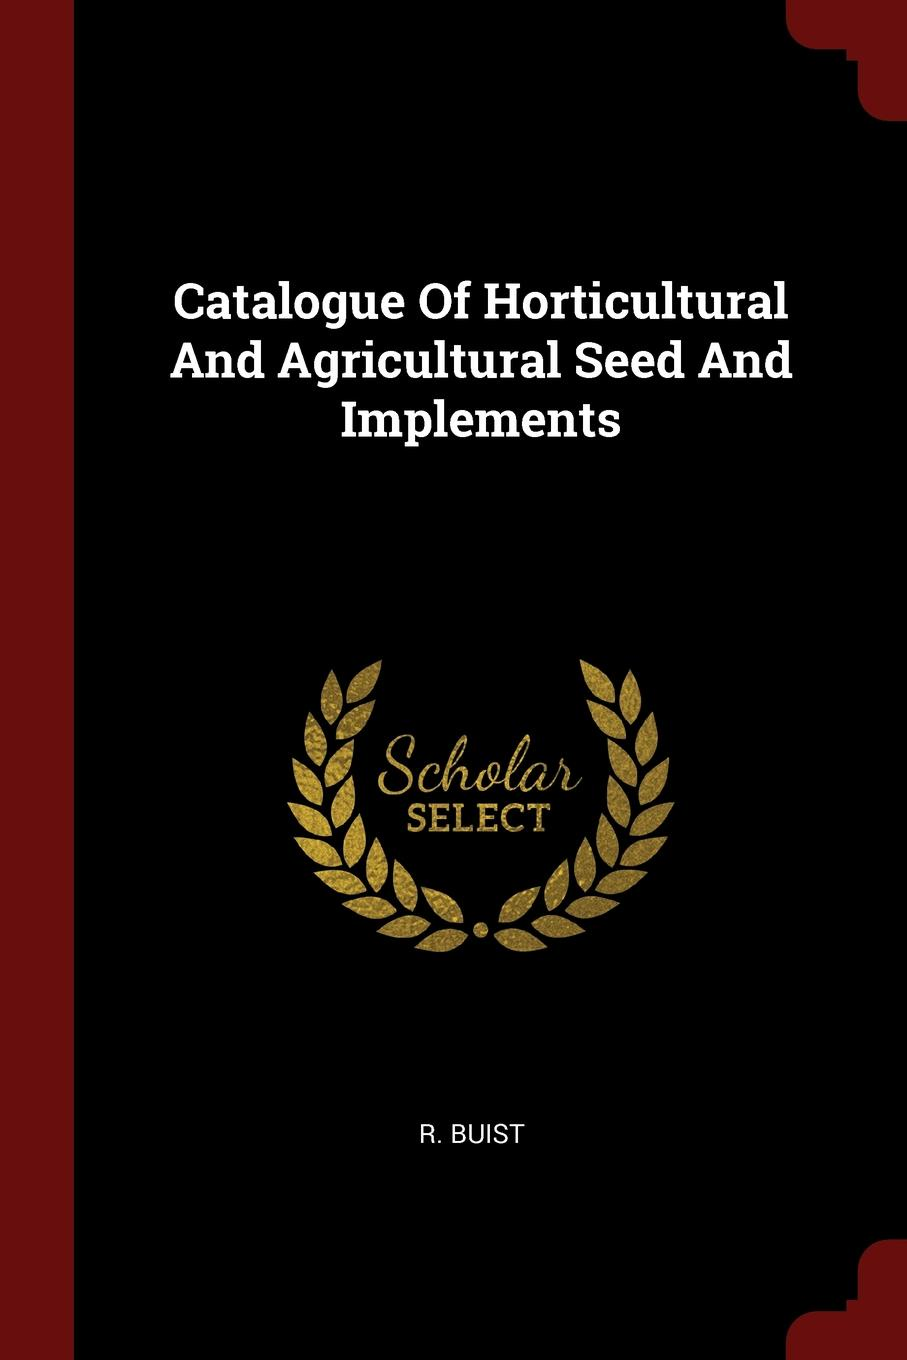 R. Buist Catalogue Of Horticultural And Agricultural Seed And Implements